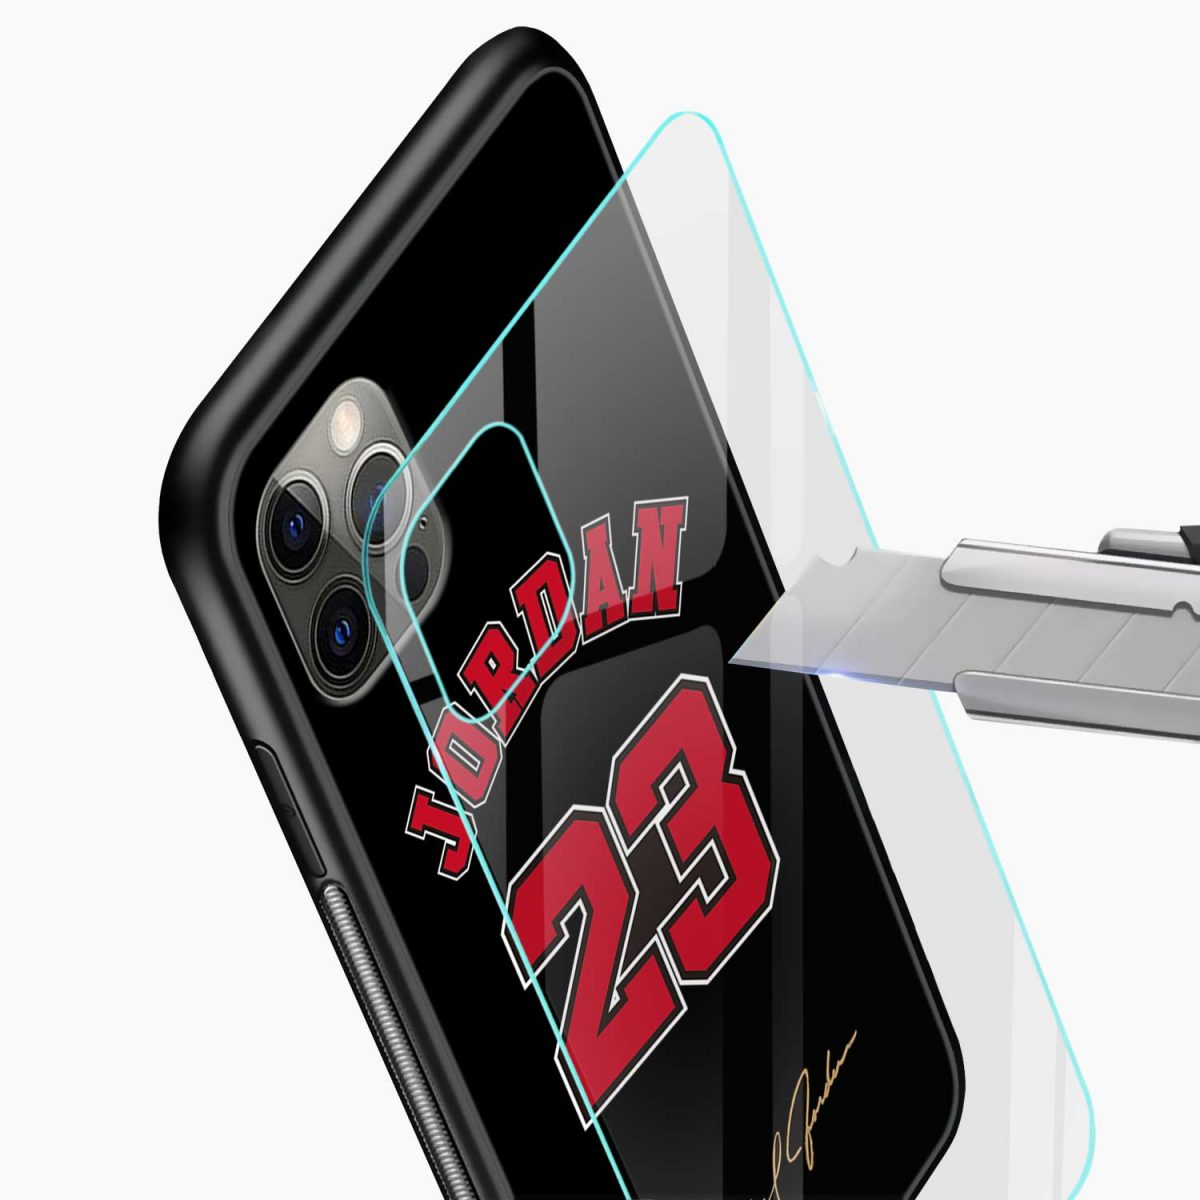 jordan 23 iphone pro back cover glass view